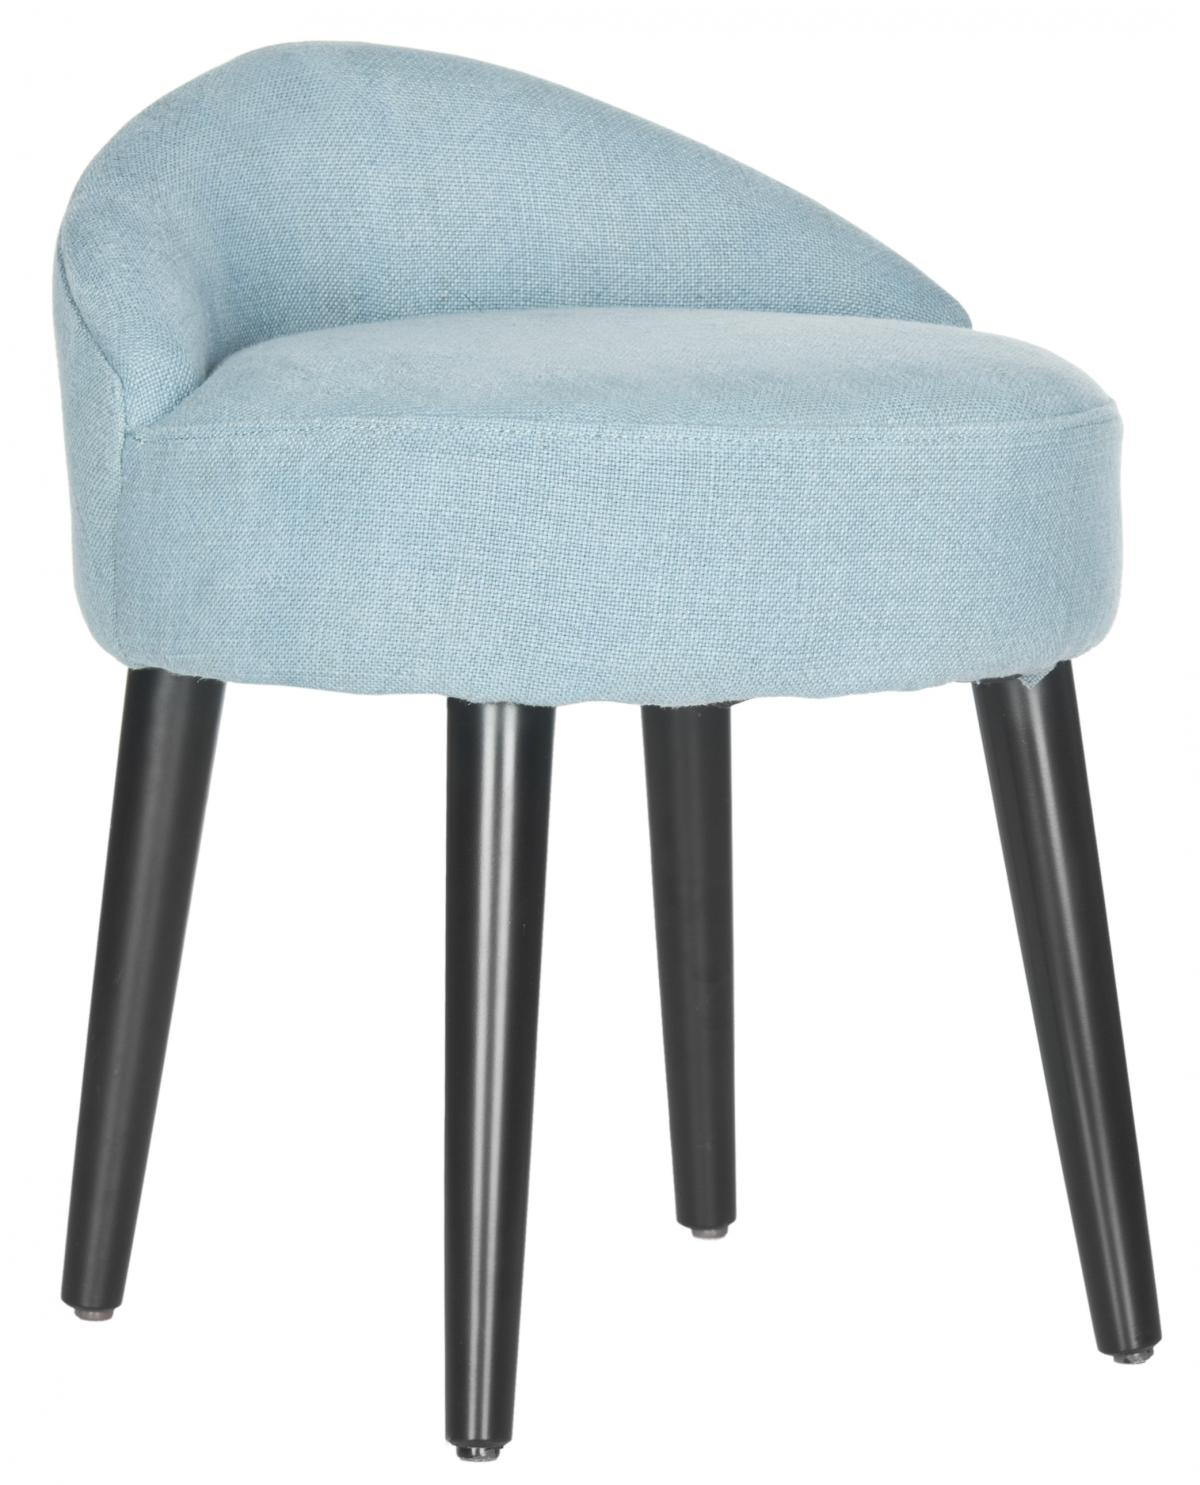 Safavieh - MCR4693A BRINDA VANITY CHAIR - LIGHT BLUE